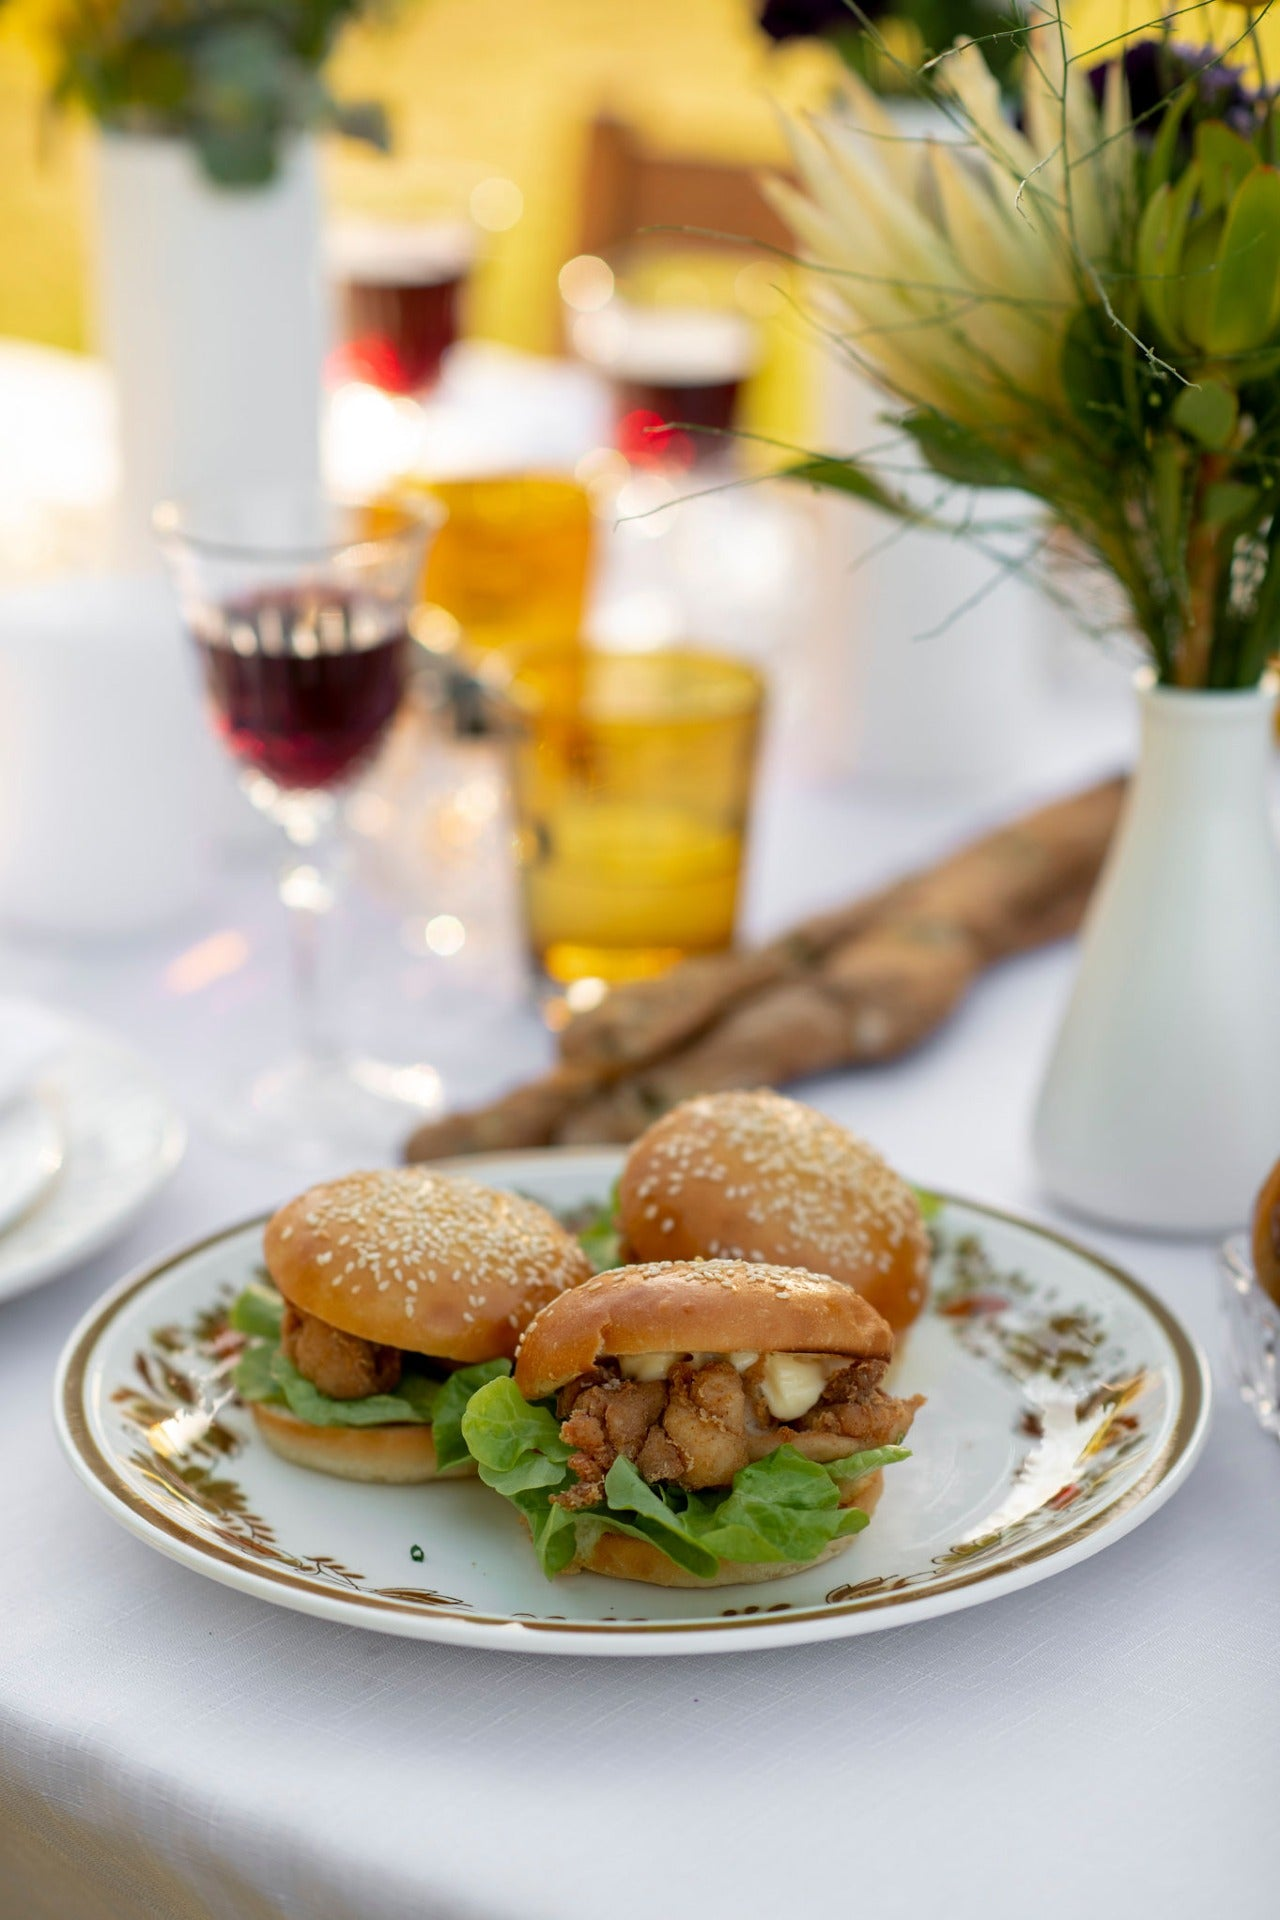 Catering Melbourne - Private & Corporate Catering,